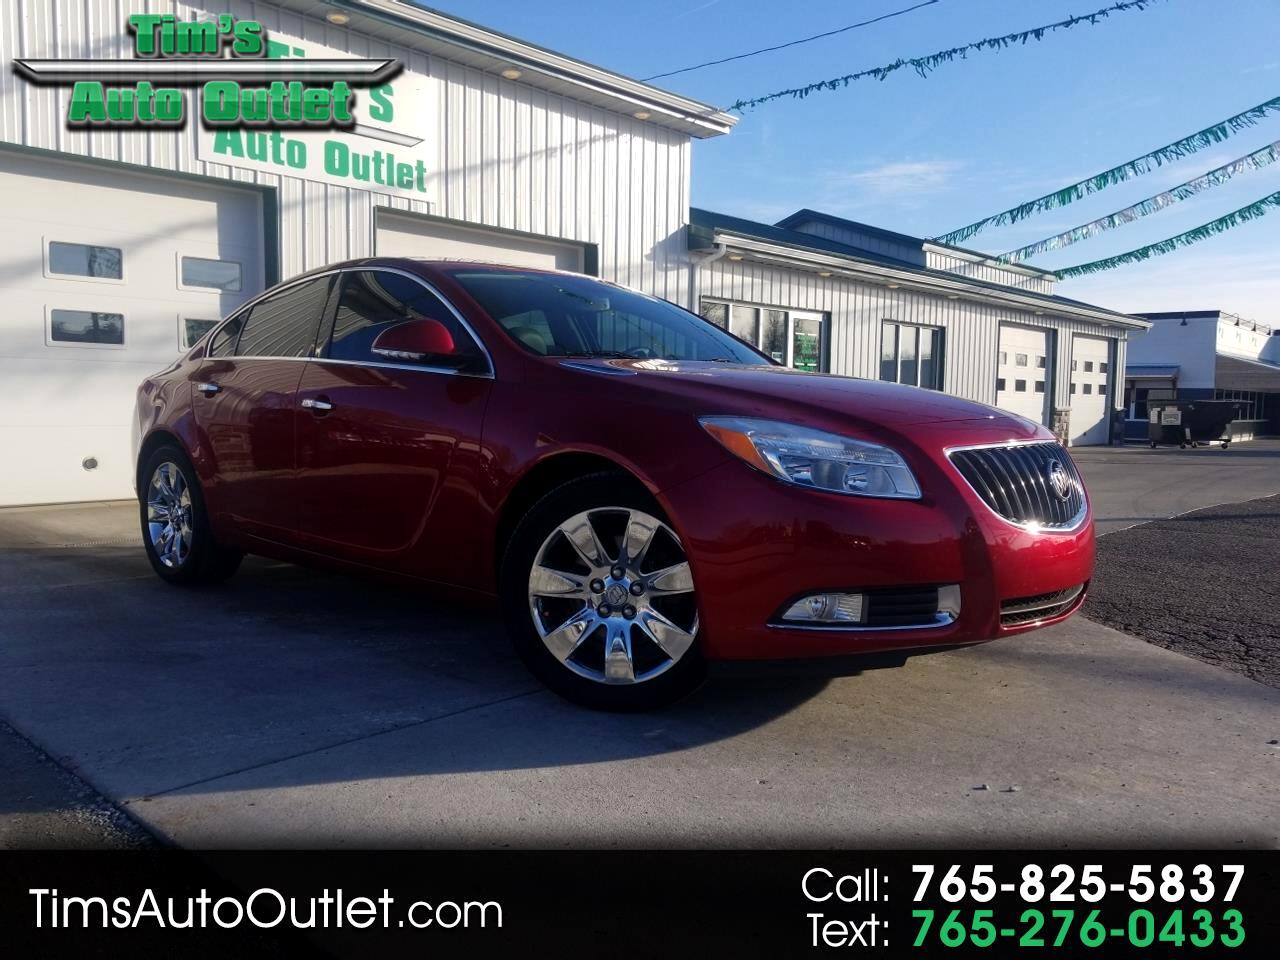 2013 Buick Regal 4dr Sdn Turbo Premium 1